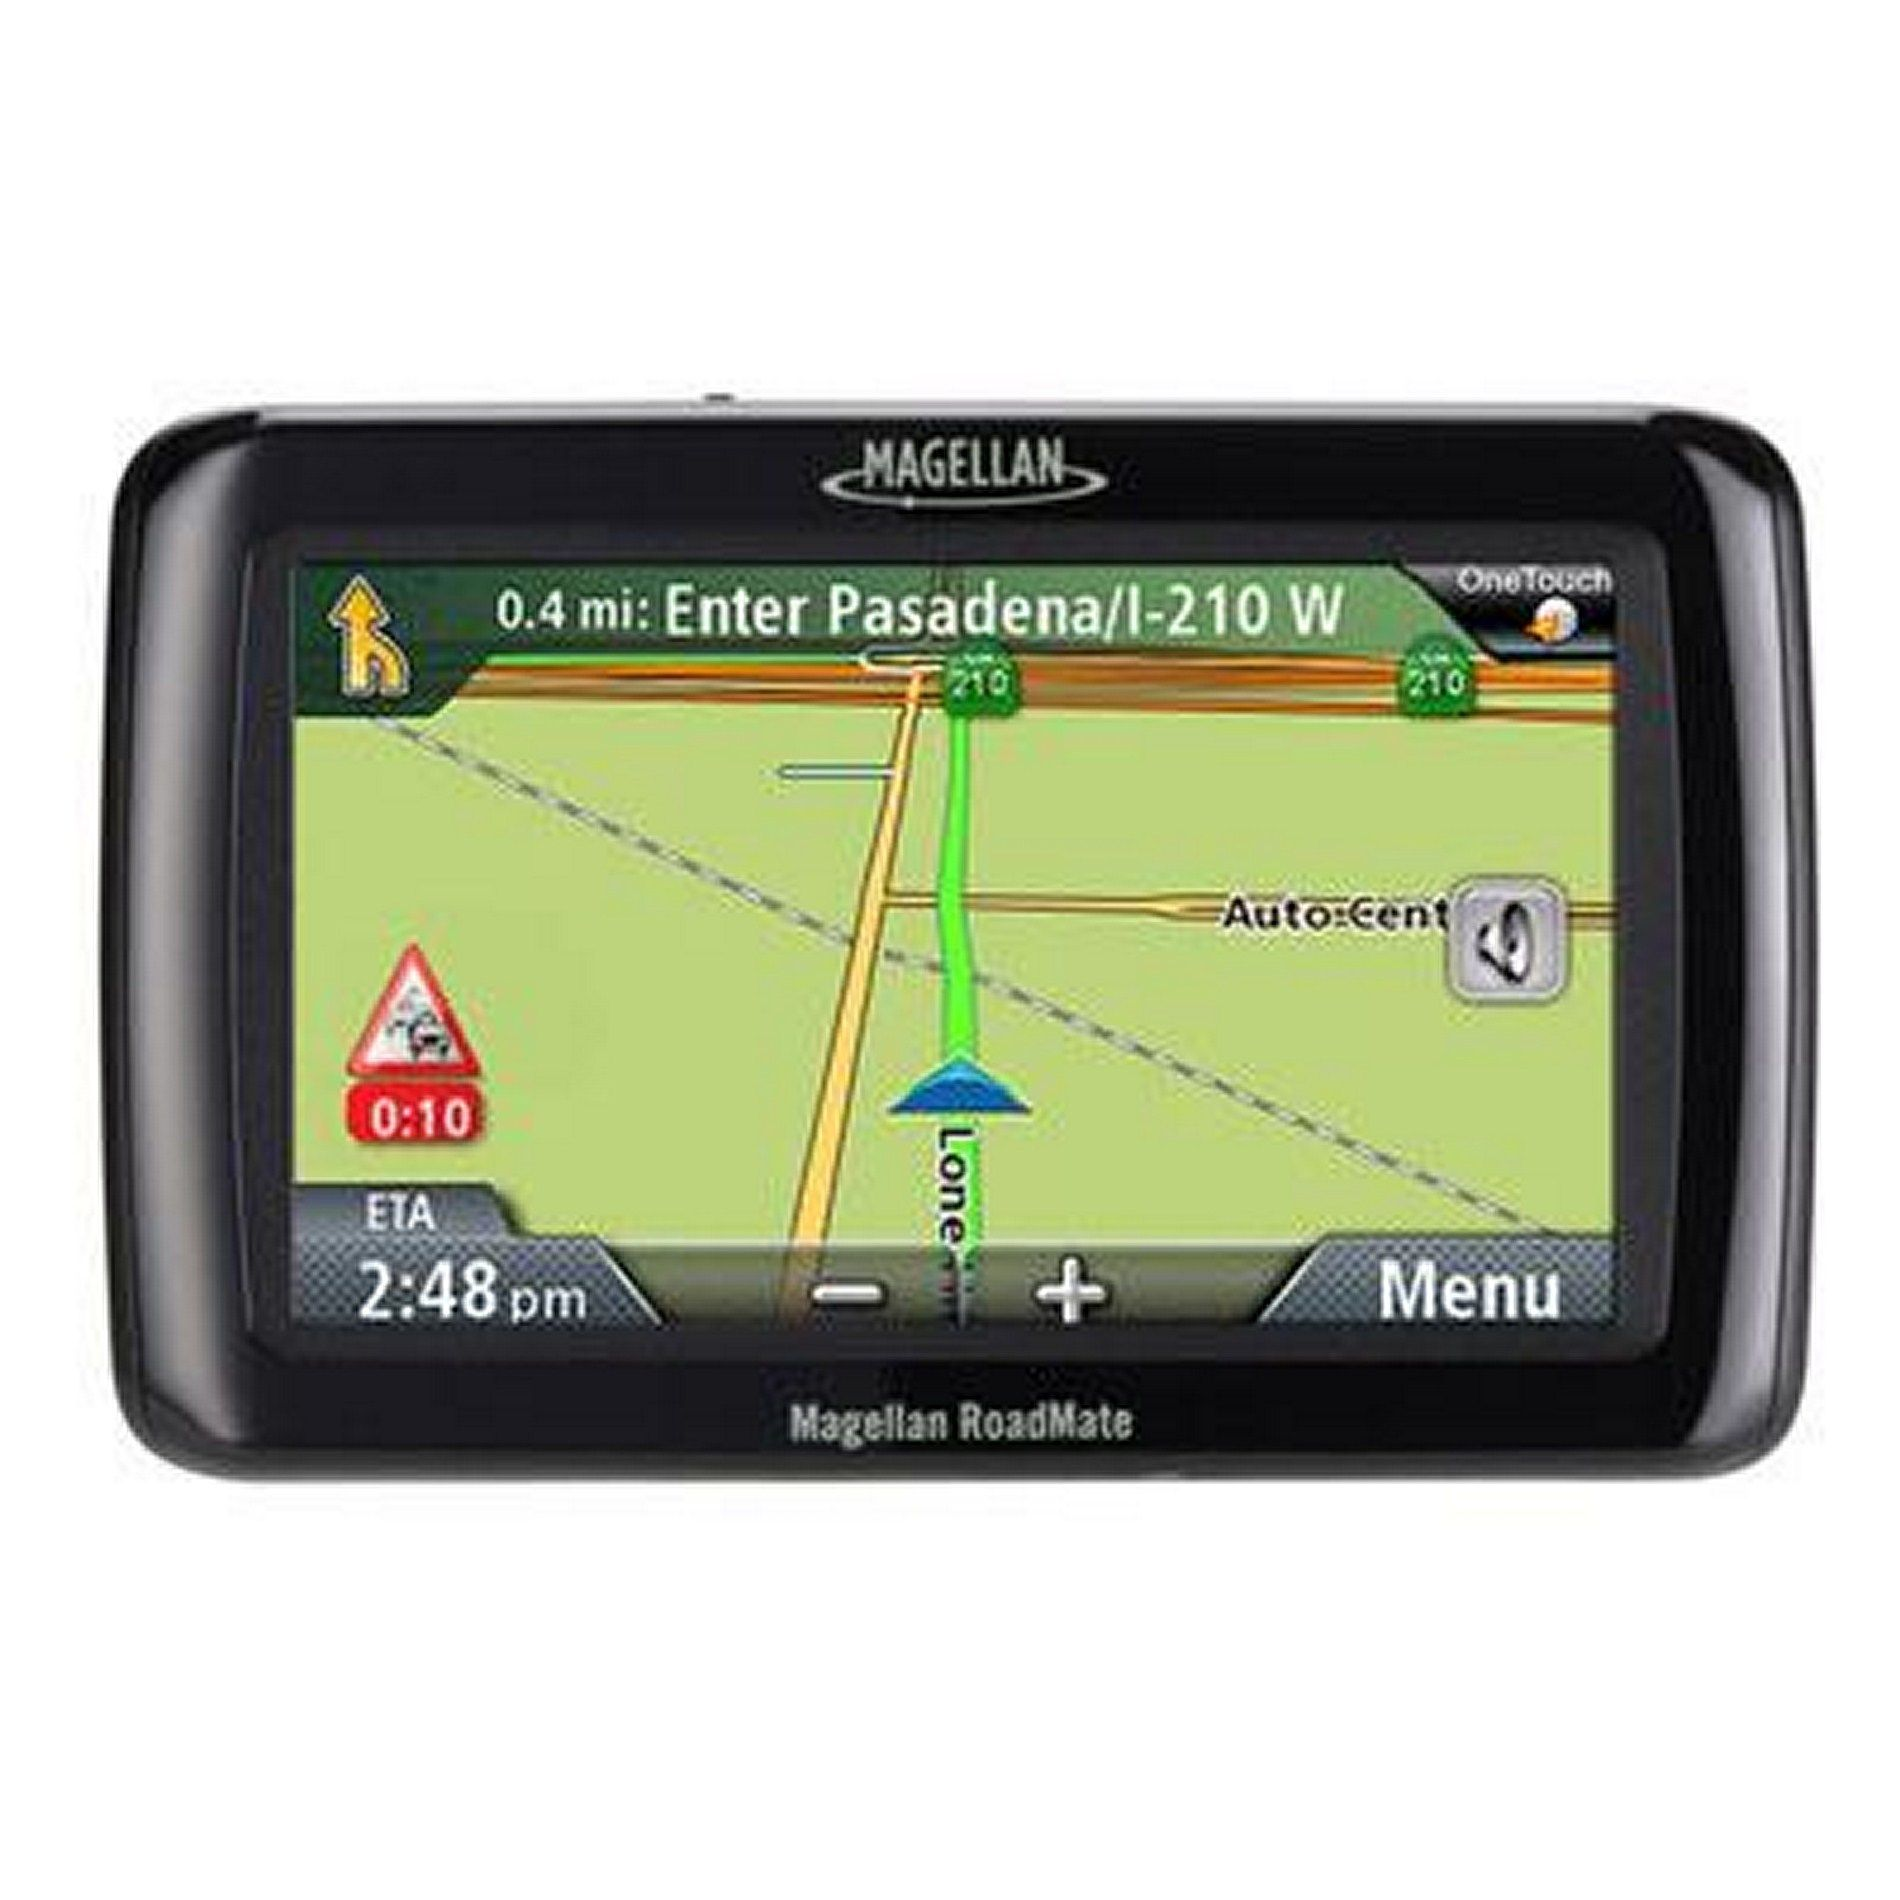 Handy Tips For Cost Effective Maintenance Of Your Car Gps